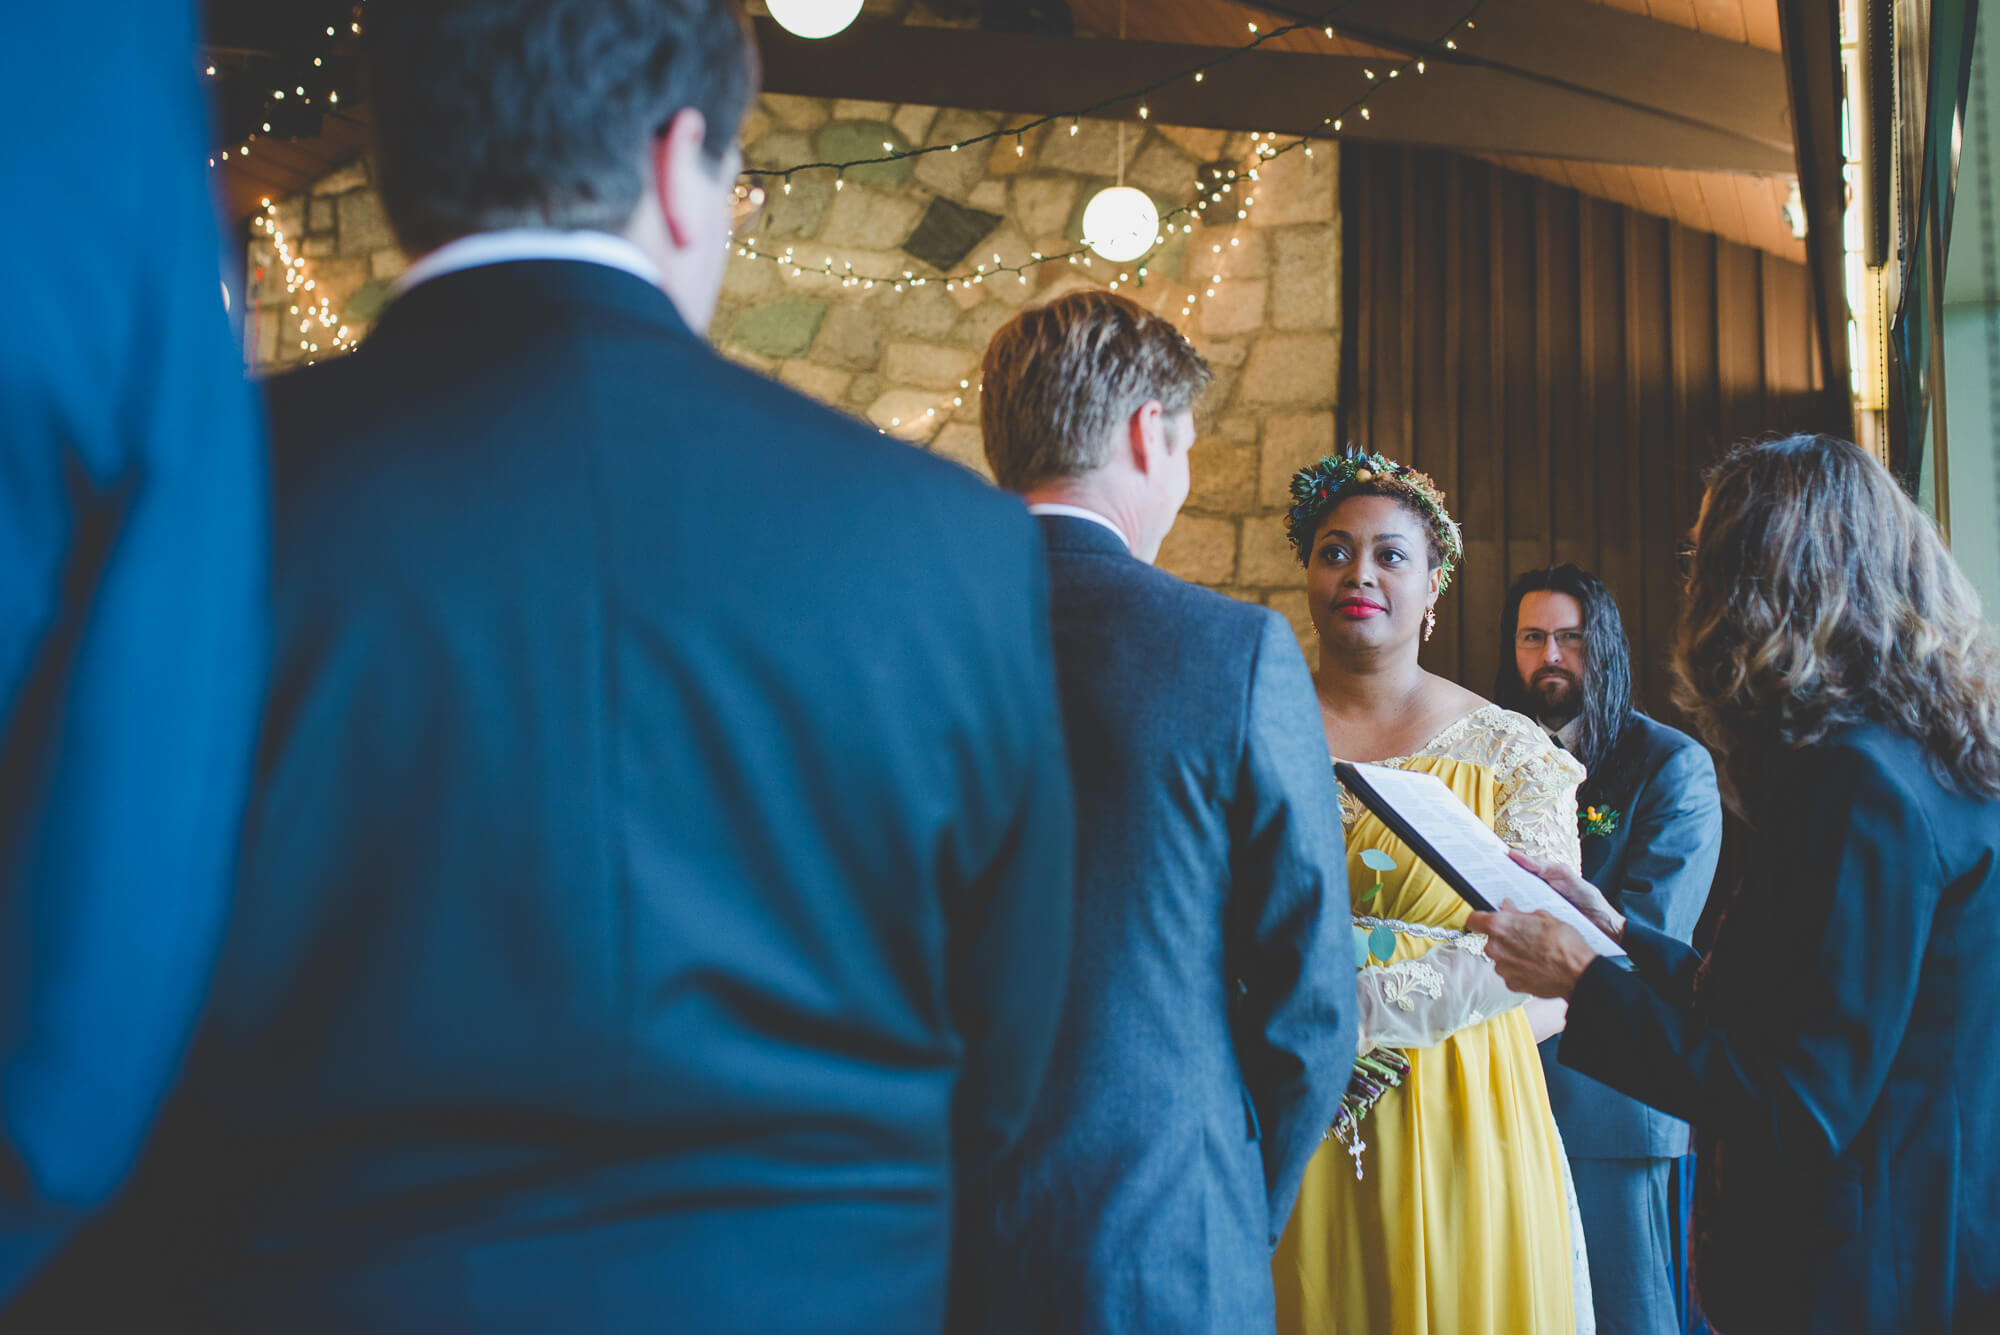 bride in beautiful yellow wedding dress with succulent headpiece looking at groom during wedding vows